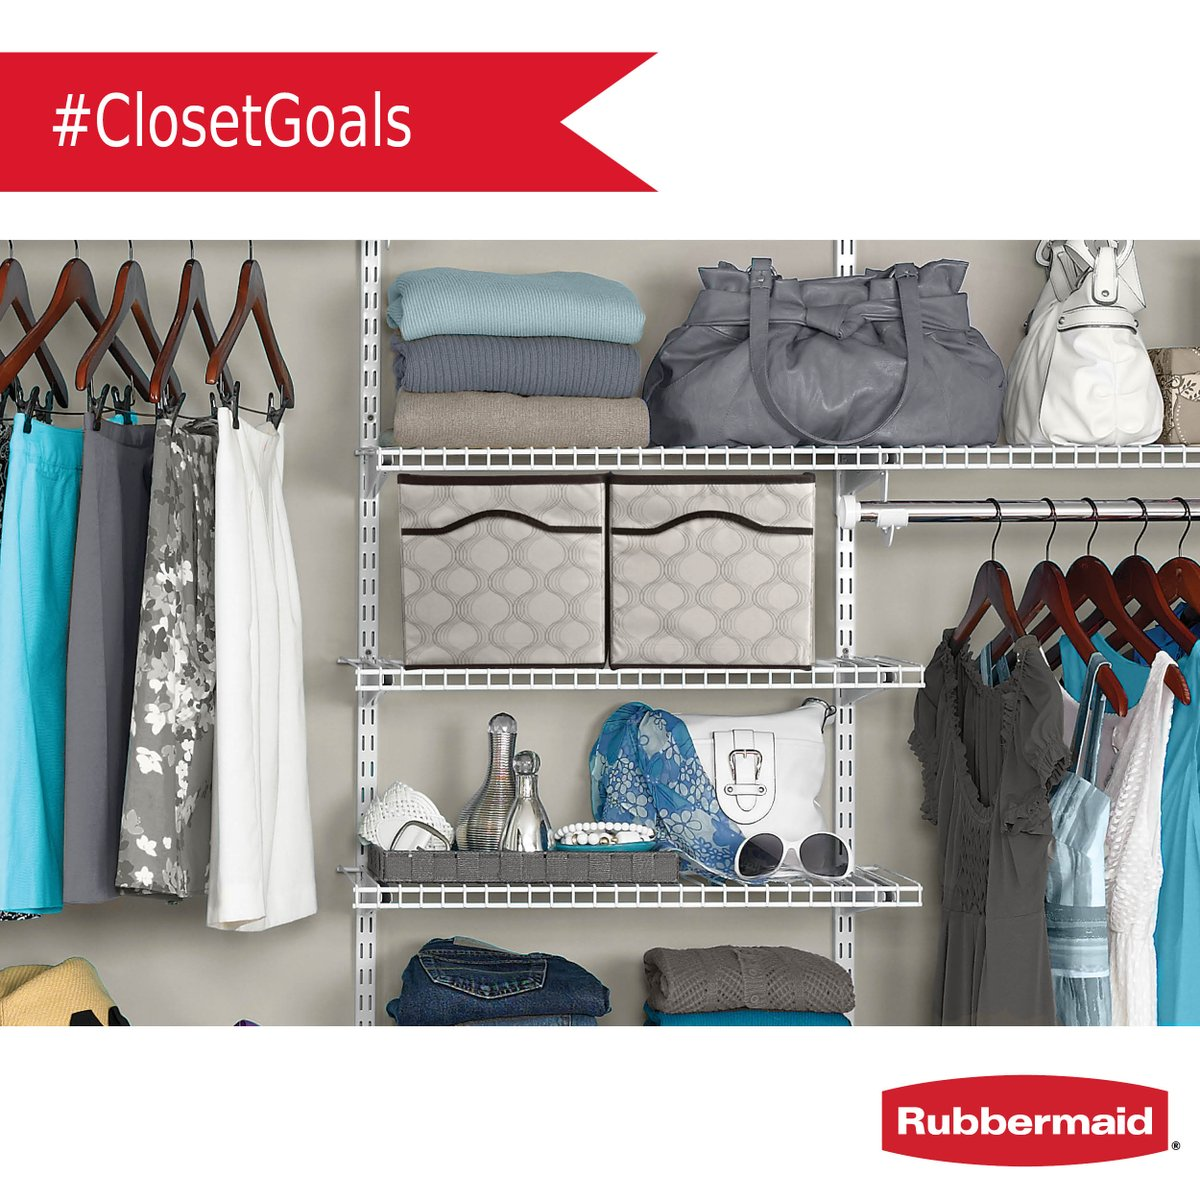 Rubbermaid On Twitter Your Dream Closet Is In Reach Thanks To Rubbermaid Fasttrack Https T Co C44ucybyvl